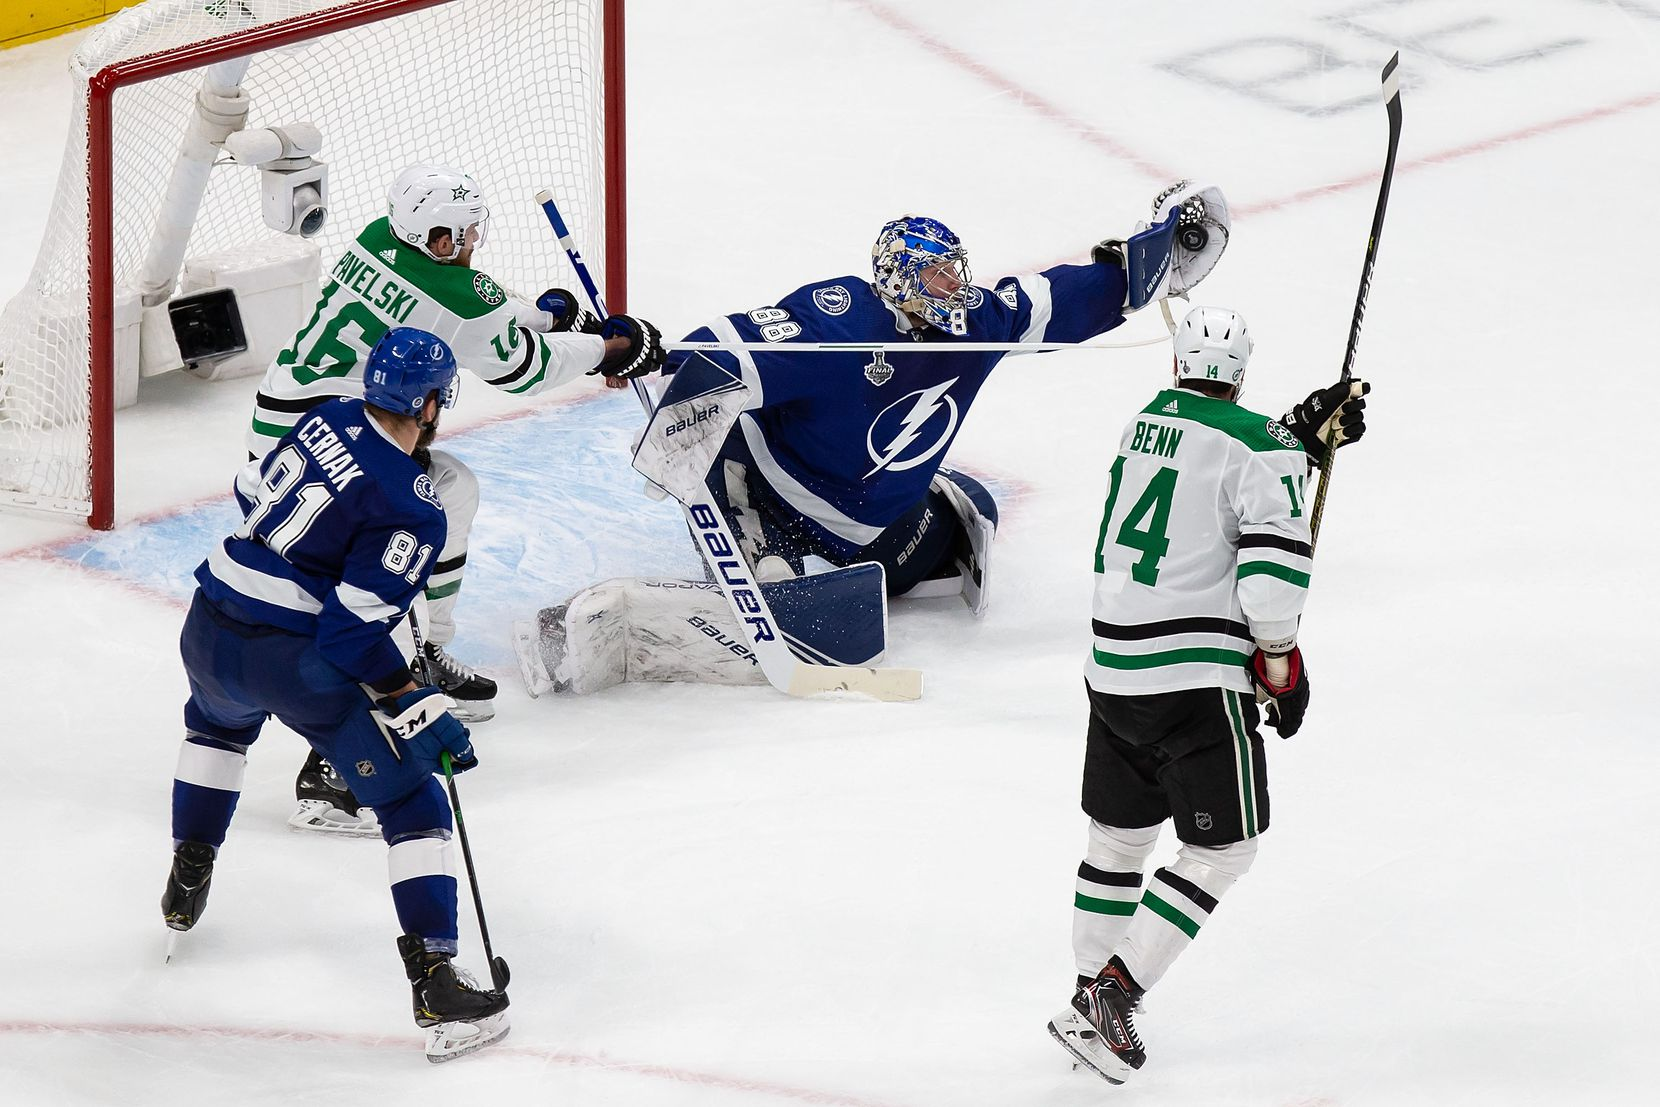 Joe Pavelski (16) and Jamie Benn (14) of the Dallas Stars attack the net as goaltender Andrei Vasilevskiy (88) of the Tampa Bay Lightning makes a save during Game Two of the Stanley Cup Final at Rogers Place in Edmonton, Alberta, Canada on Monday, September 21, 2020. (Codie McLachlan/Special Contributor)